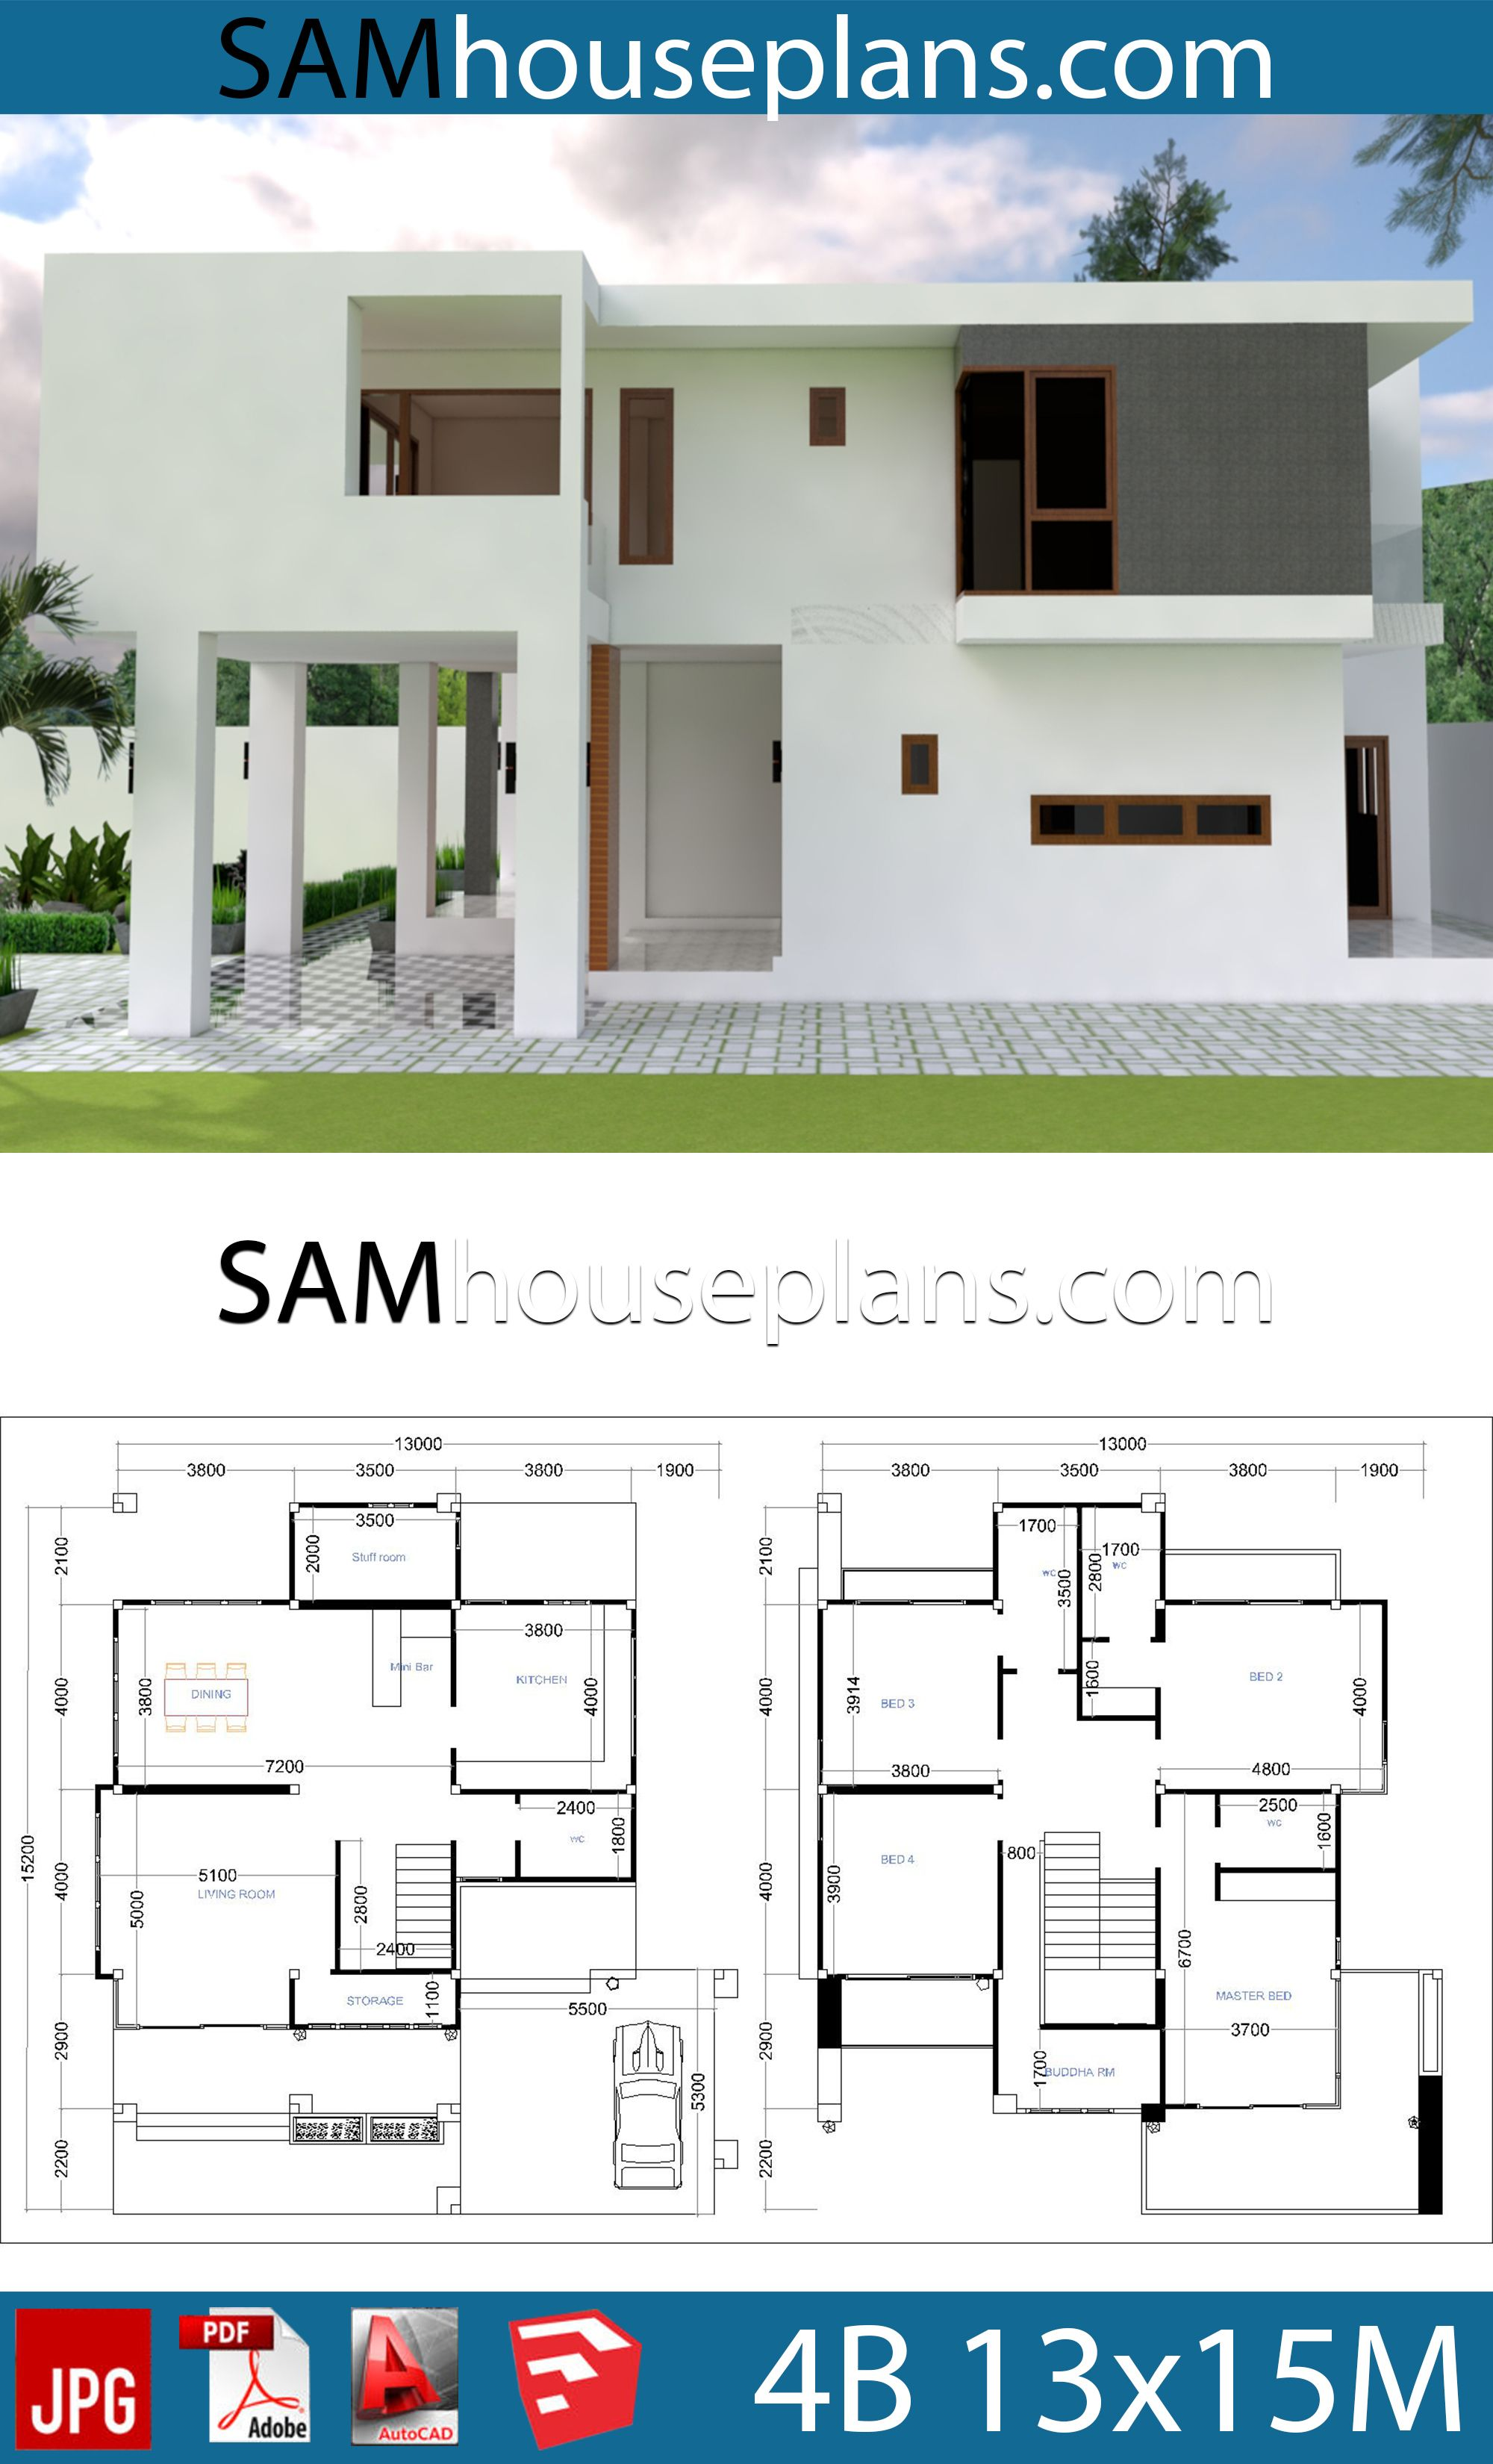 House Plans 13x15 With 4 Bedrooms House Plans Free Downloads Model House Plan 4 Bedroom House Plans Free House Plans